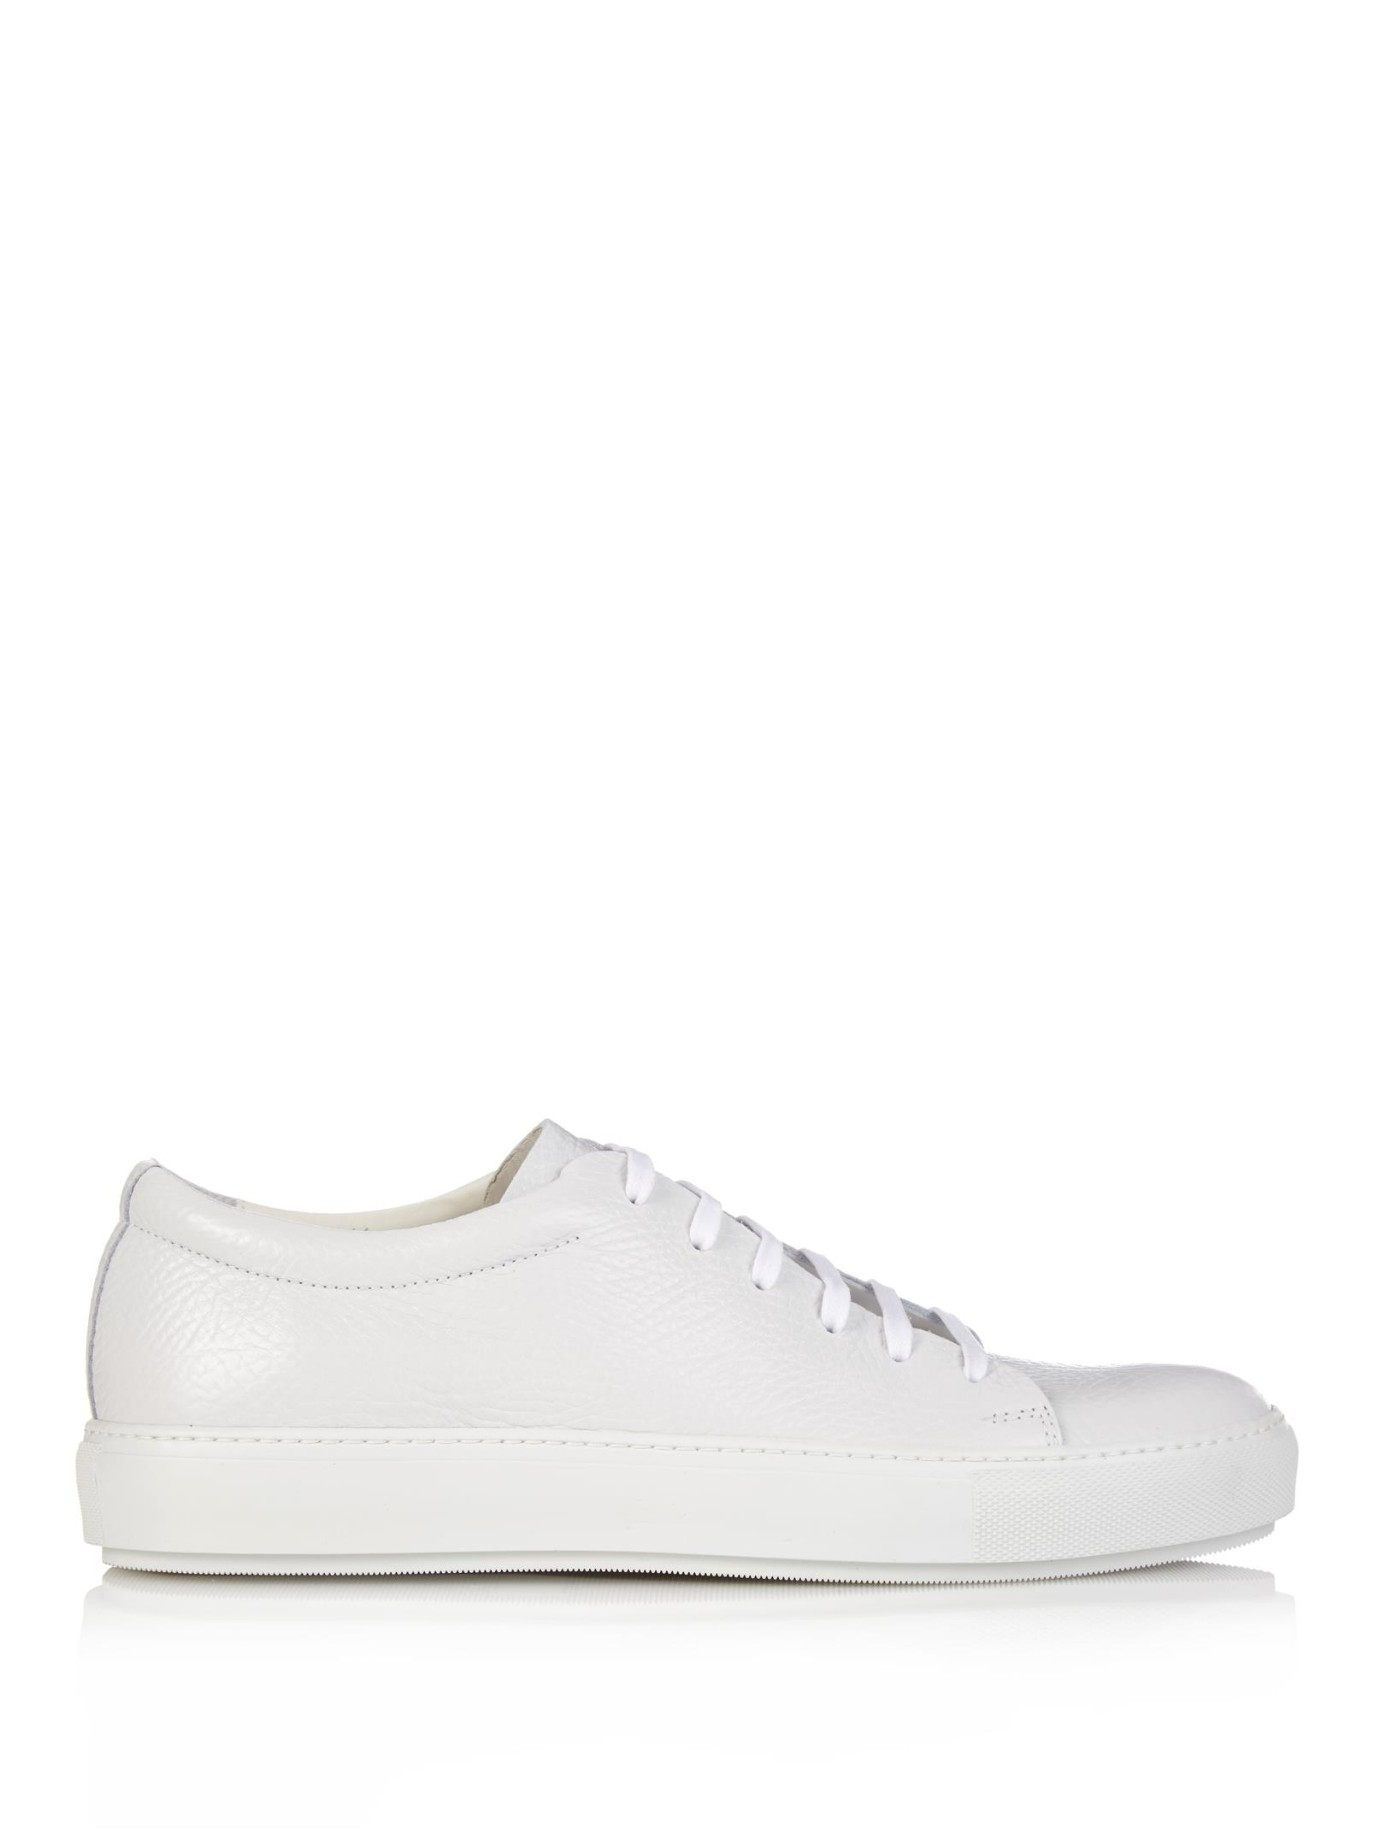 AcneLeather Low Trainers RRlveIKAB